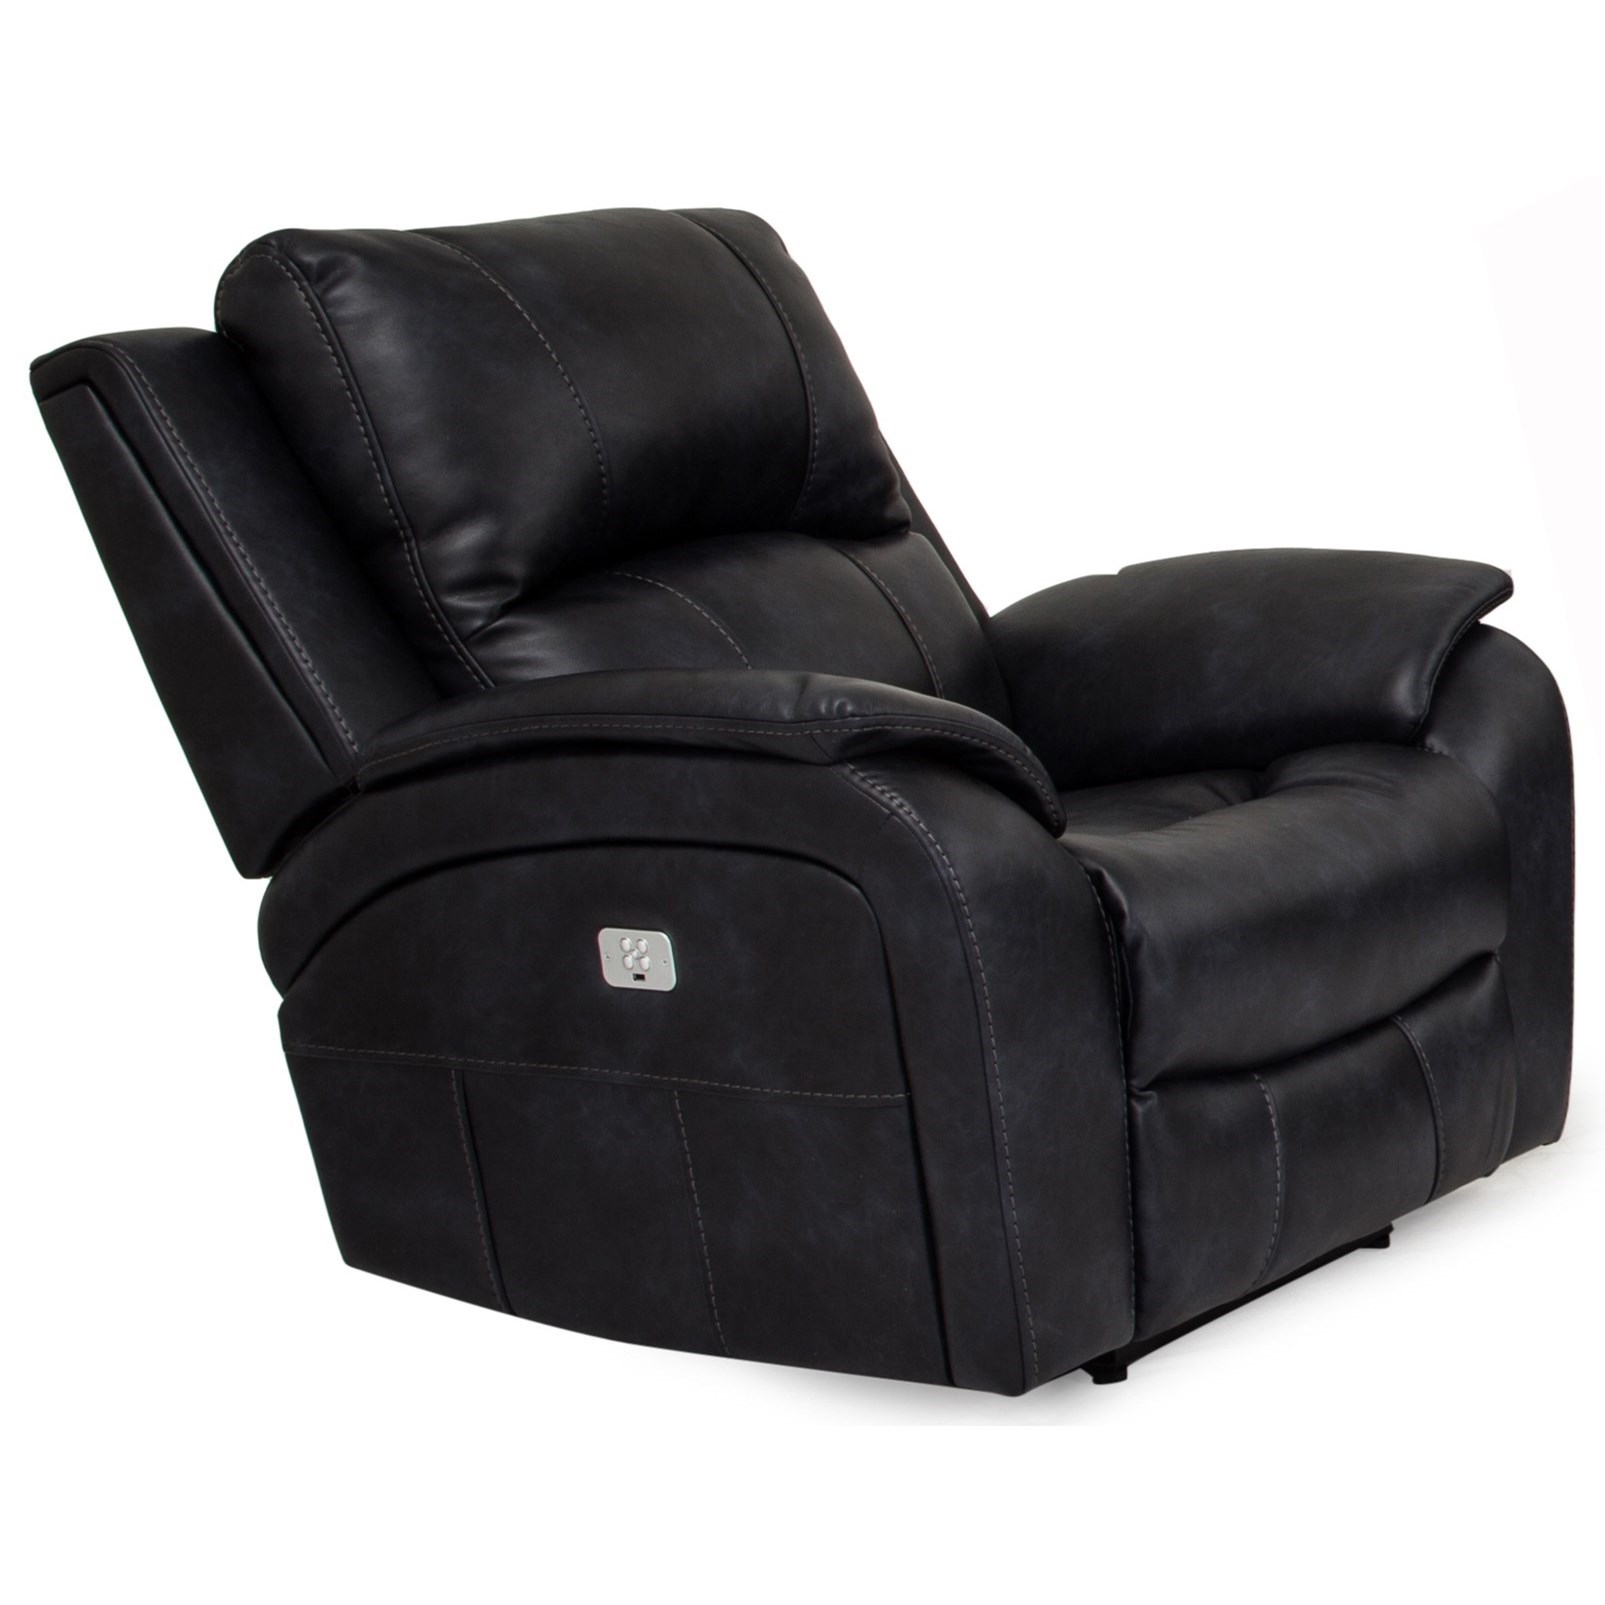 5313 Power Recliner with Power Headrest by Cheers at Lagniappe Home Store